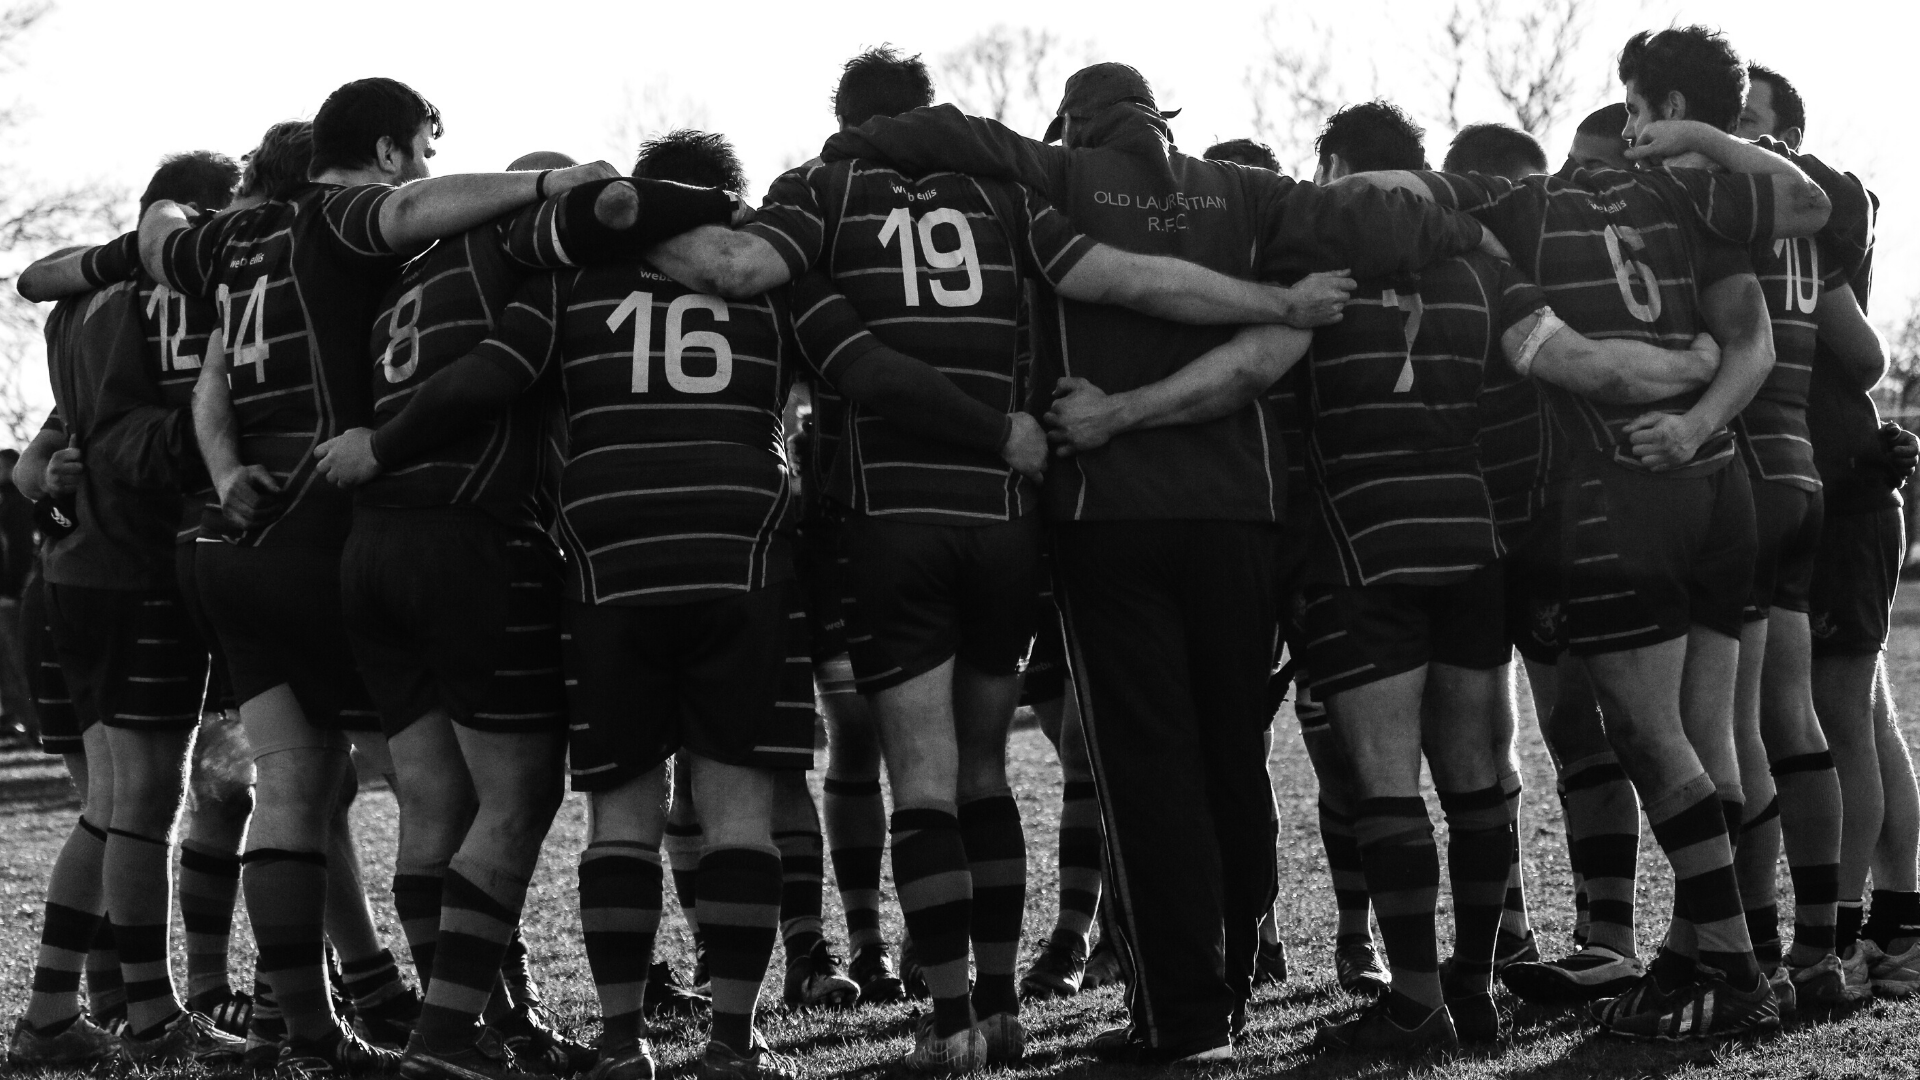 Show a rugby team in a huddle